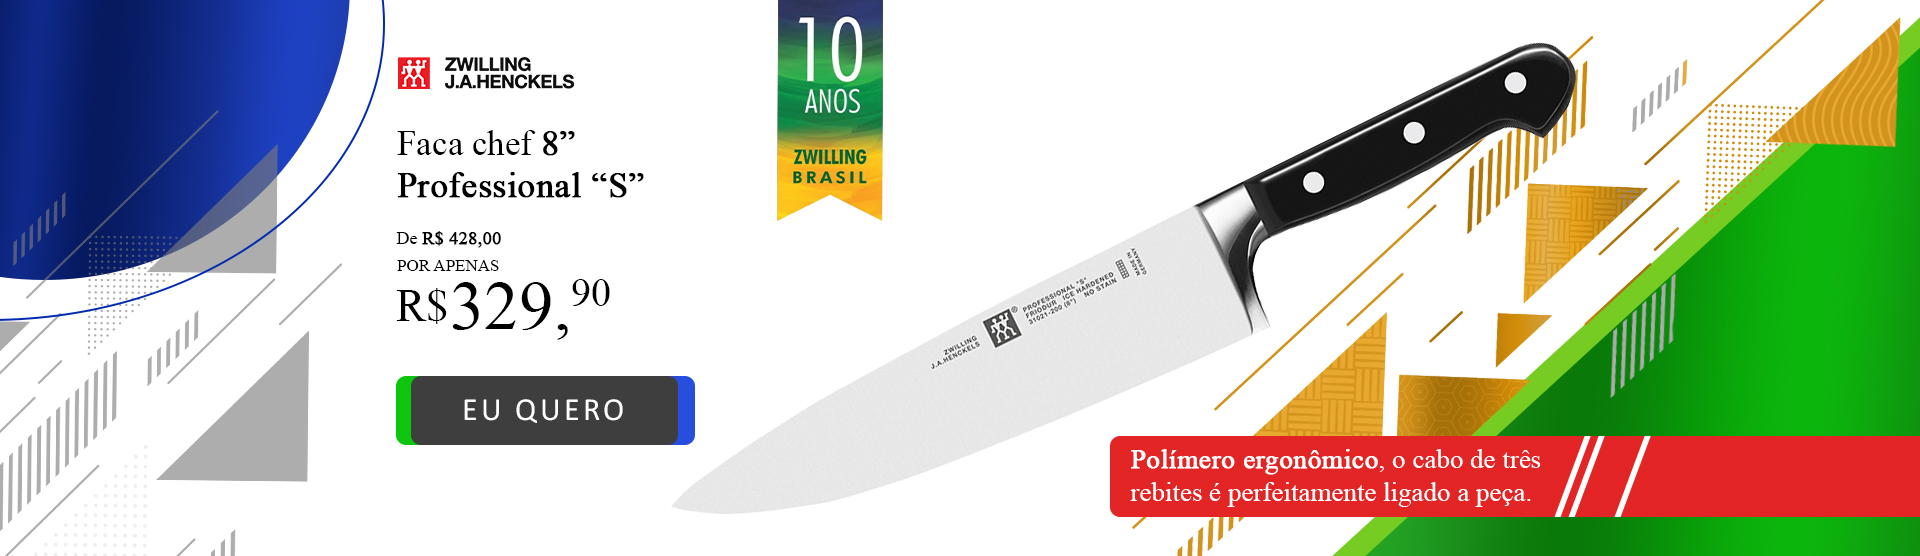 Zwilling 10 Anos